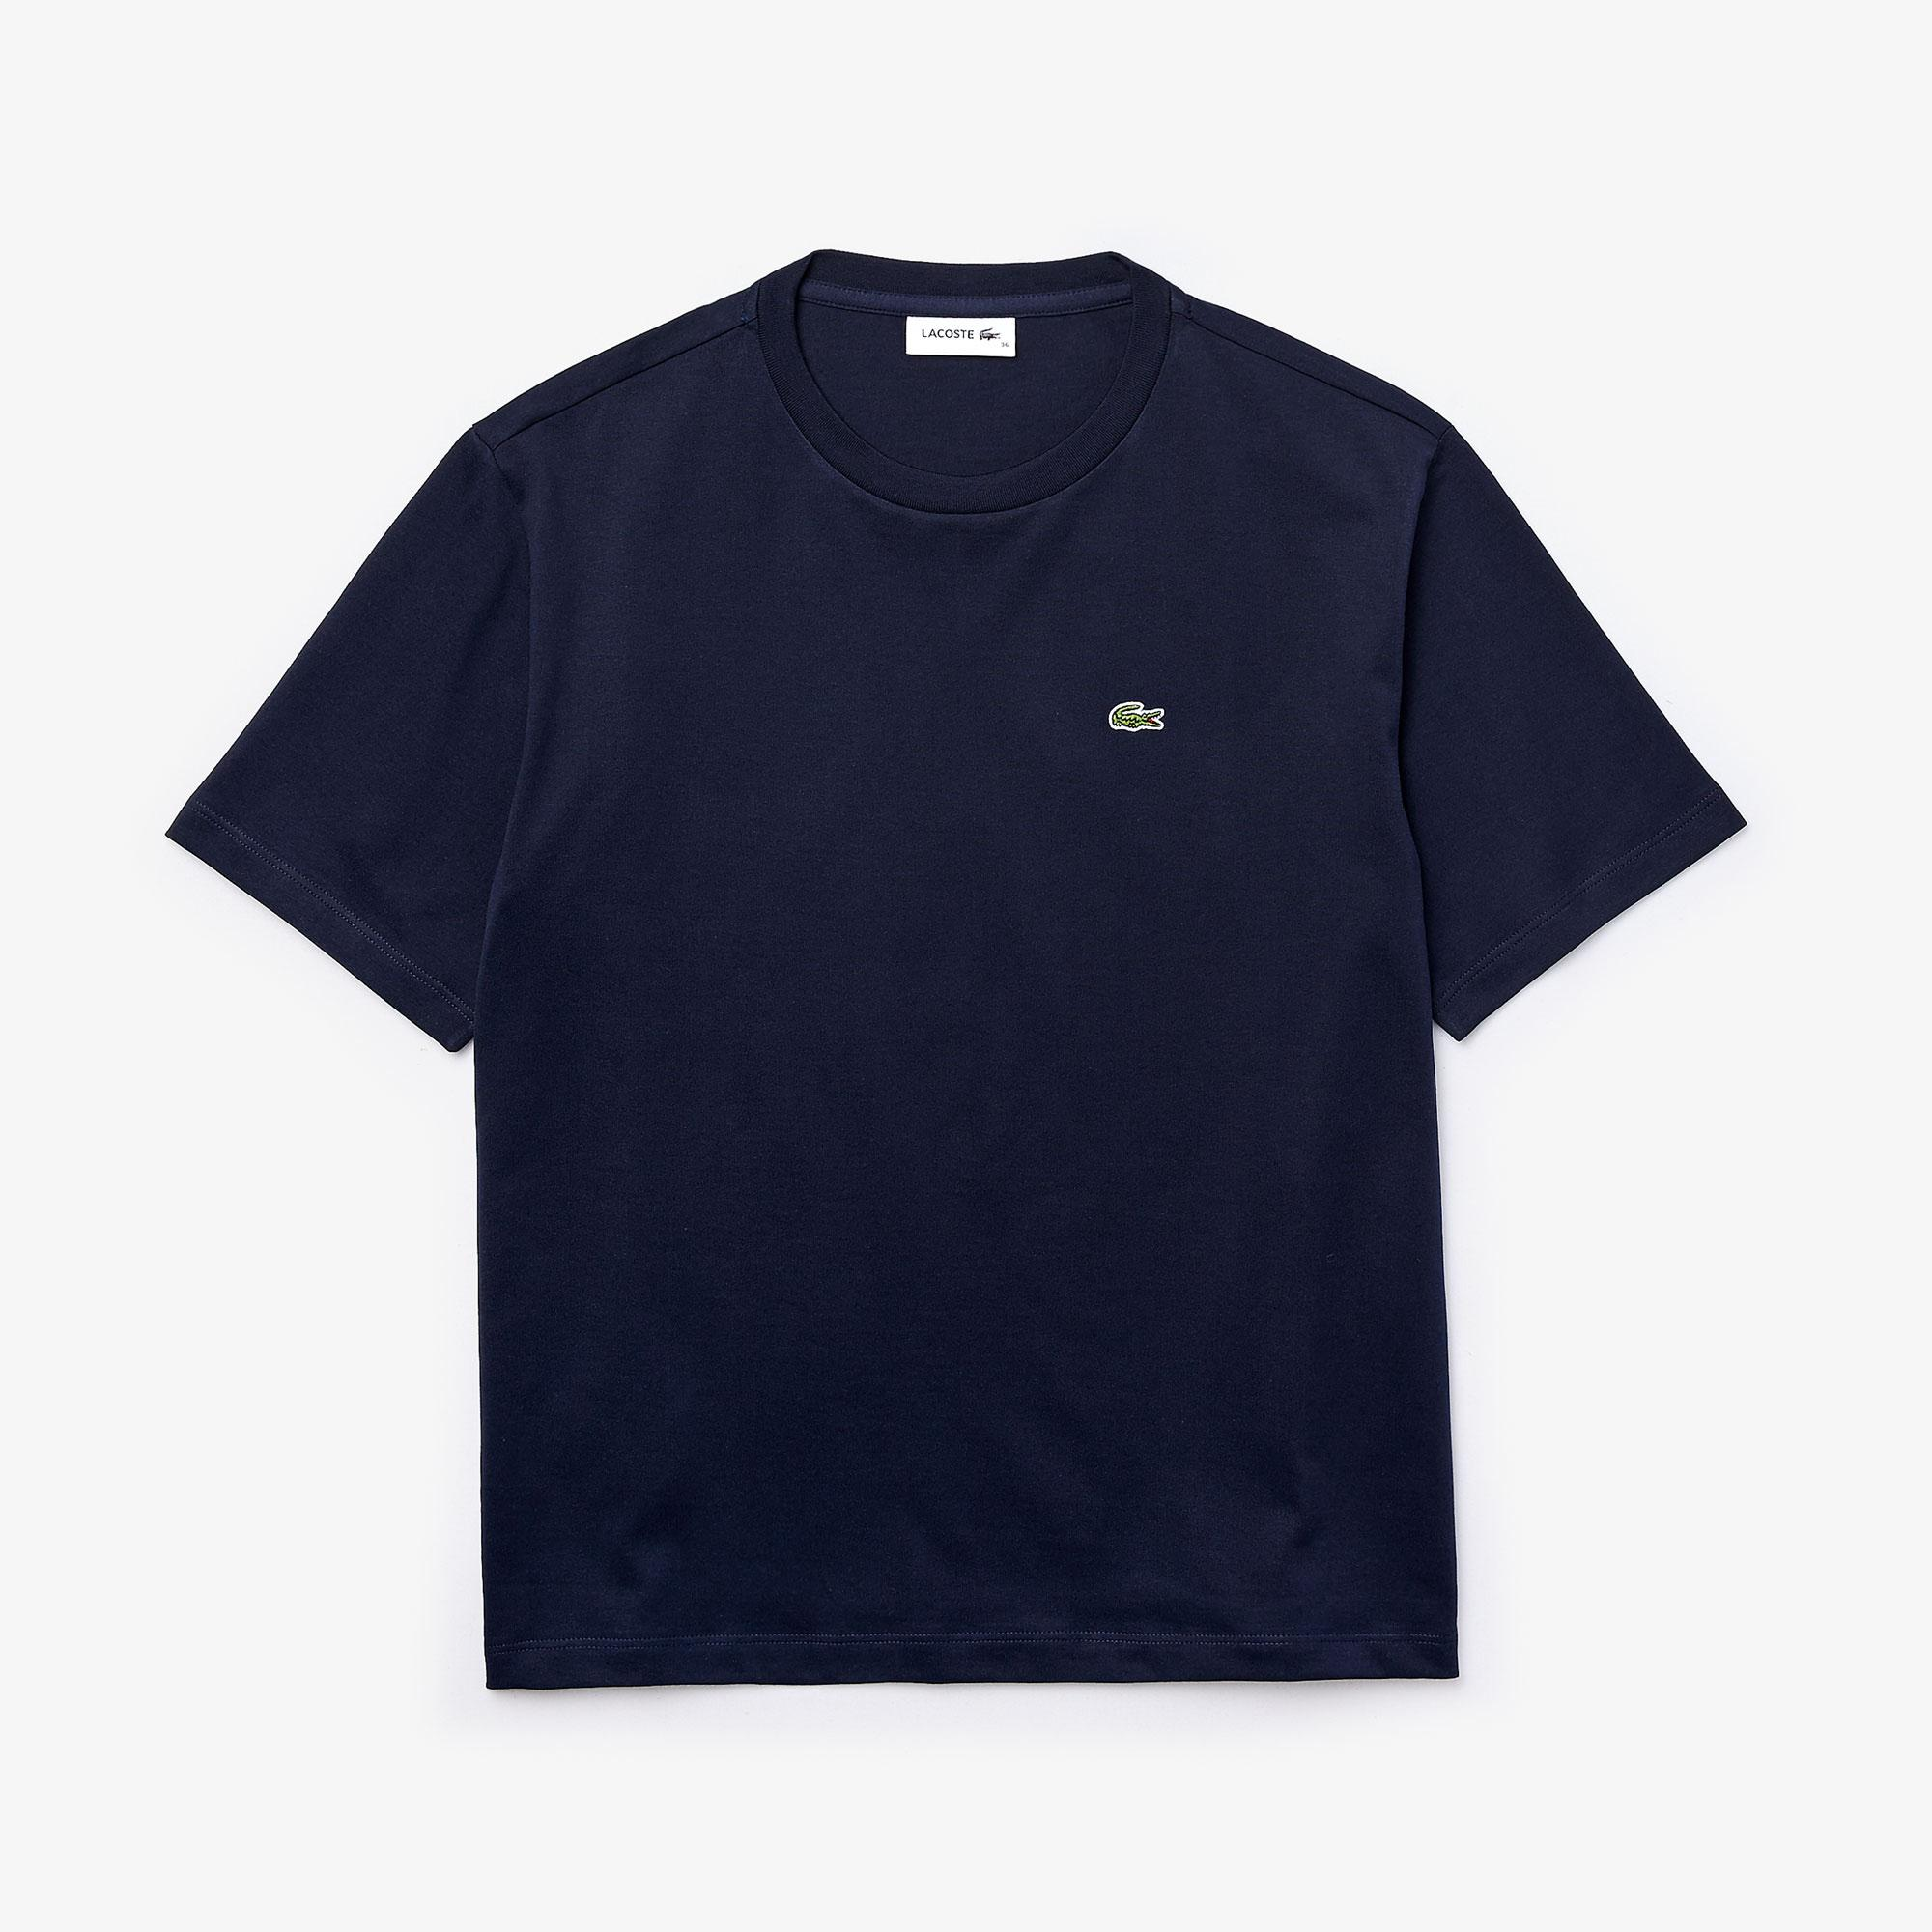 Lacoste Women's Crew Neck Premium Cotton T-Shirt